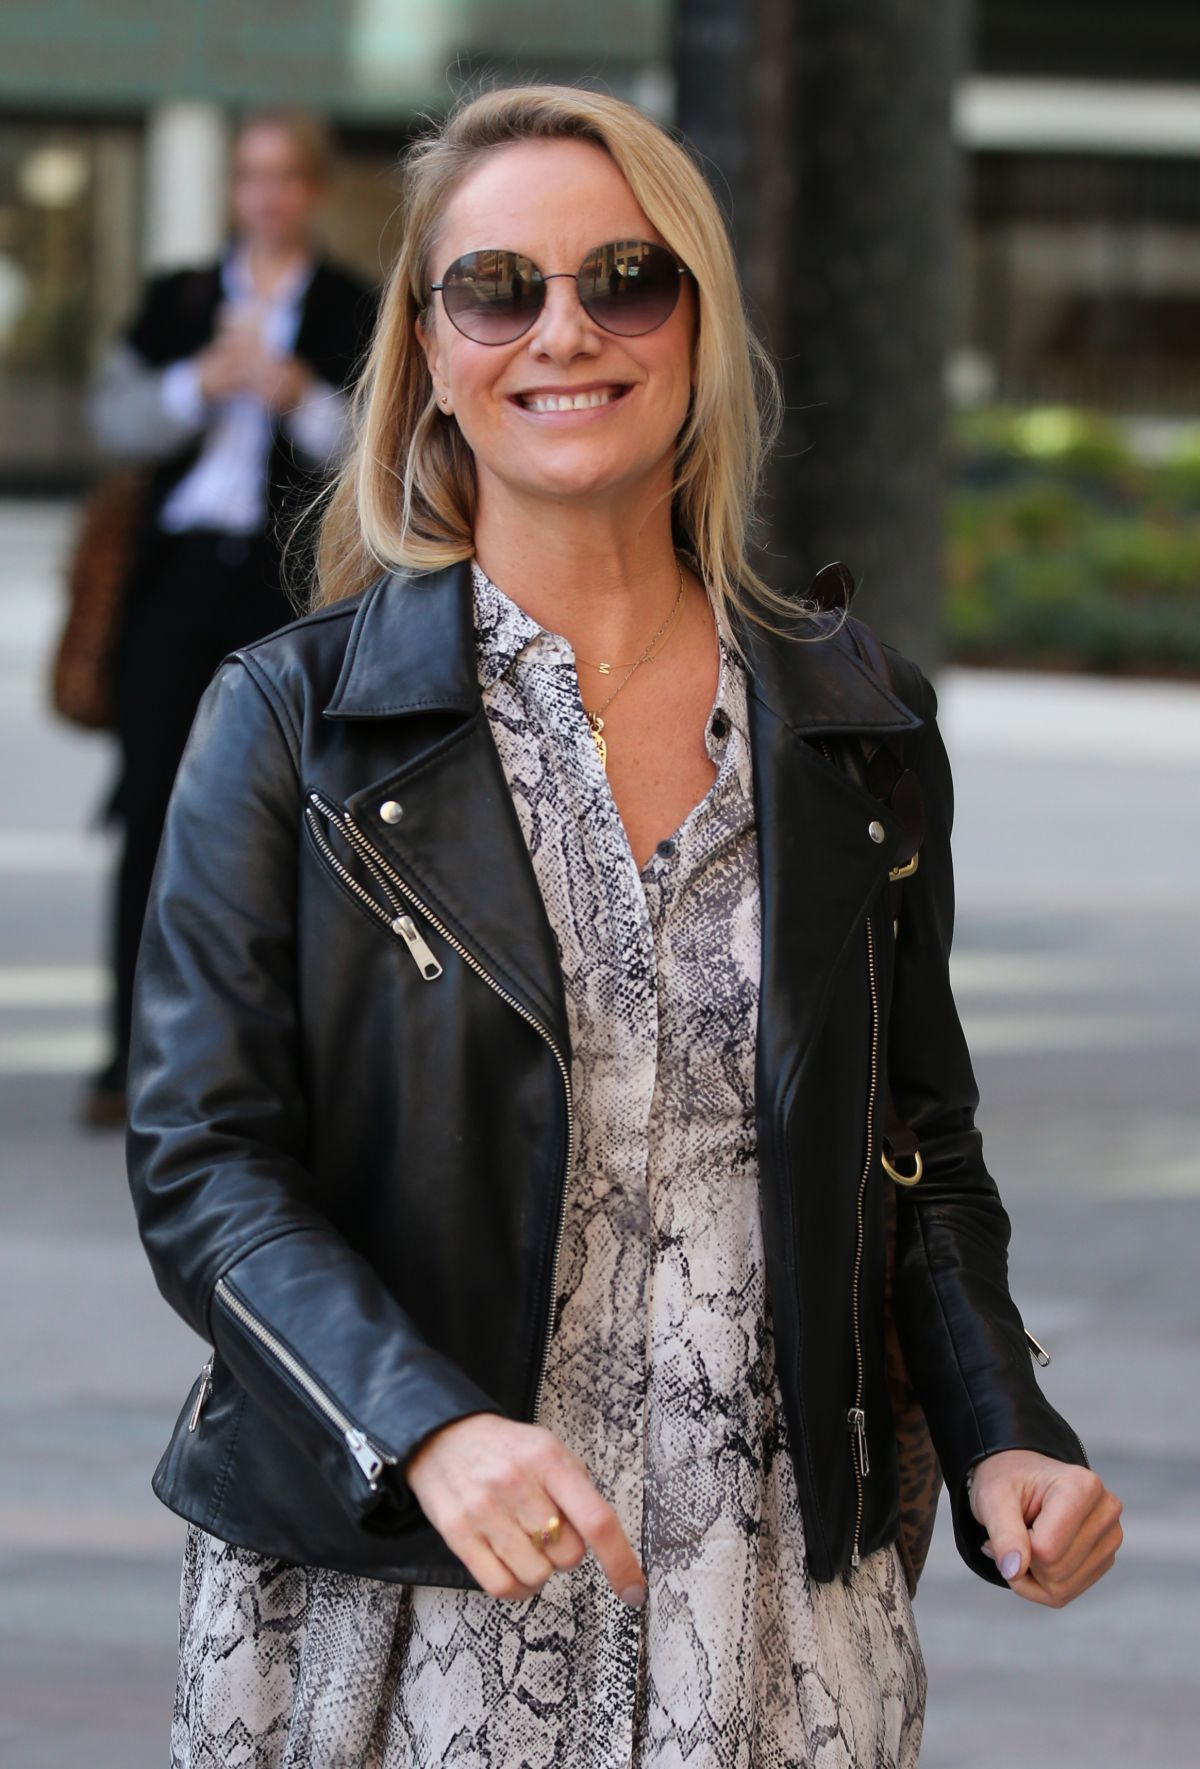 tamzin outhwaite - photo #14